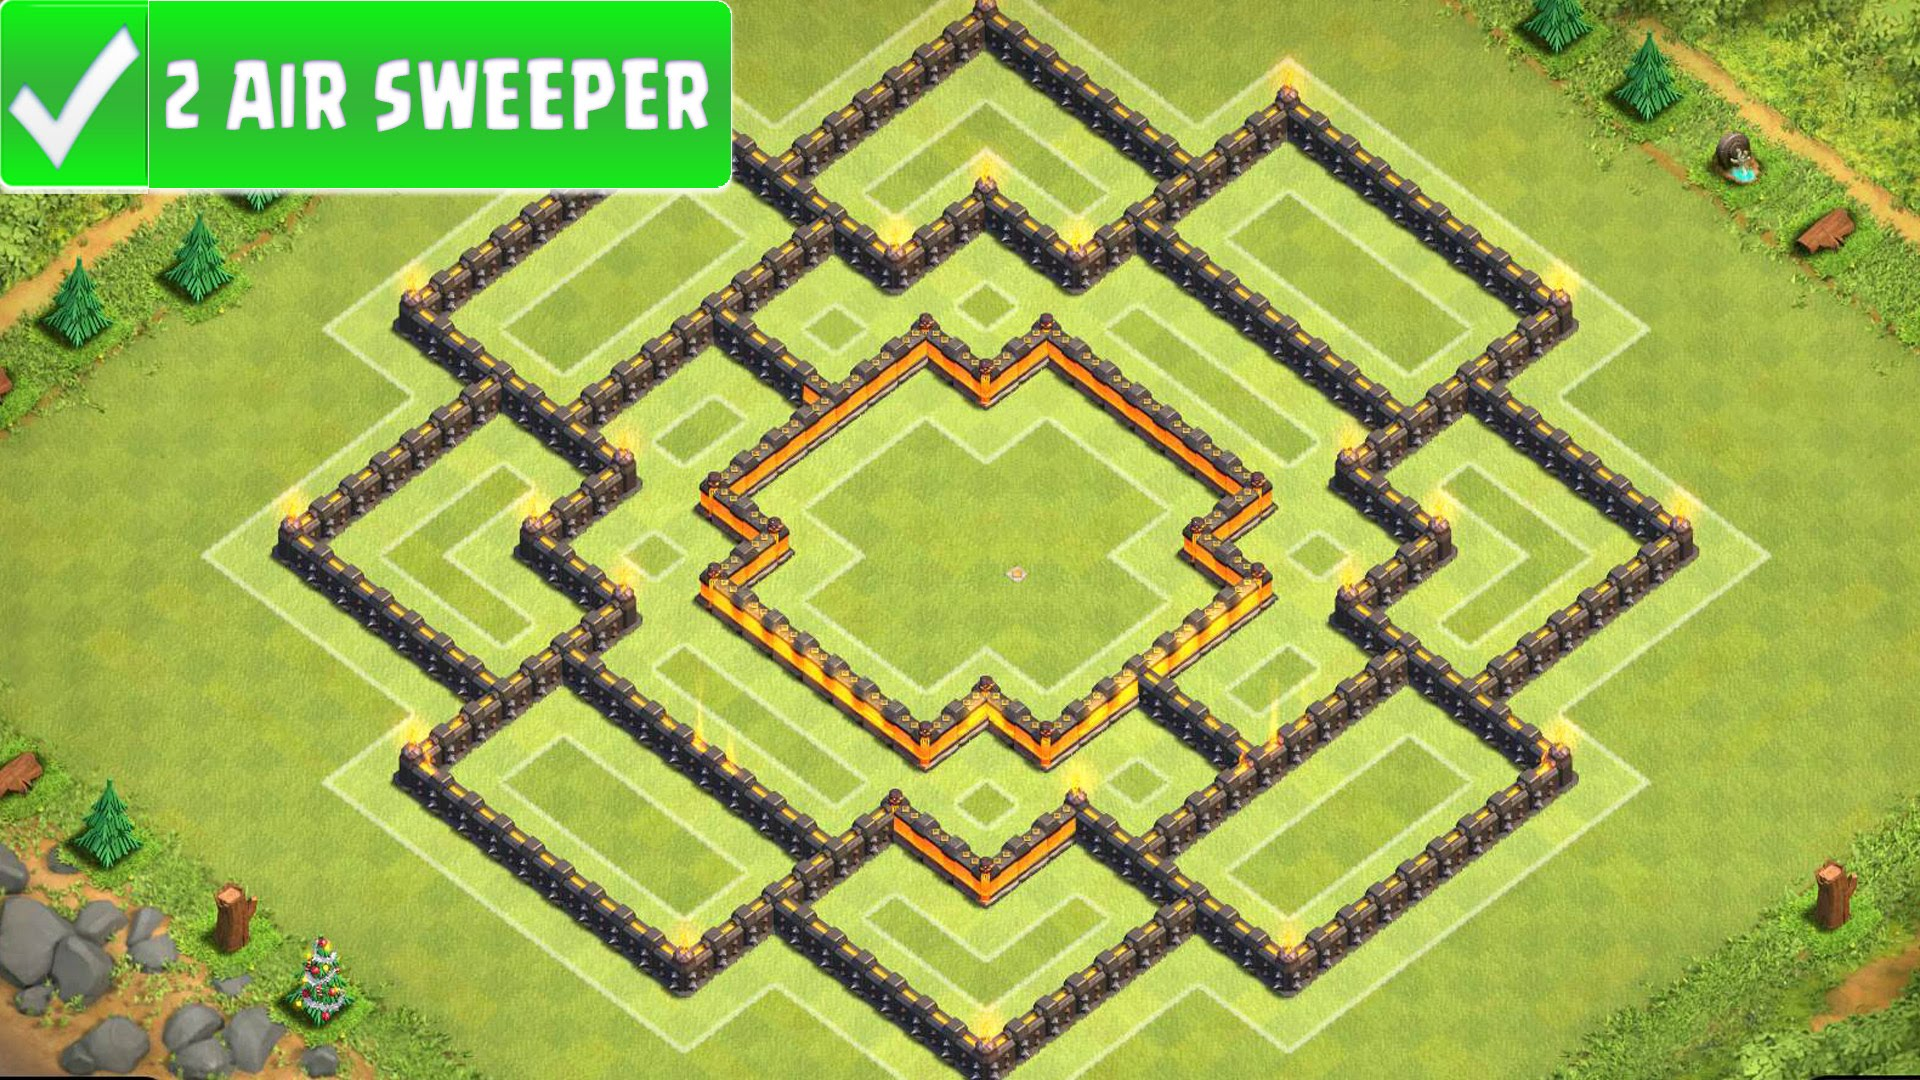 Clash of clans new epic town hall 9 th9 trophy base clash of clans new epic town hall 9 th9 trophy base pushing strategy speed build 2015 sciox Choice Image